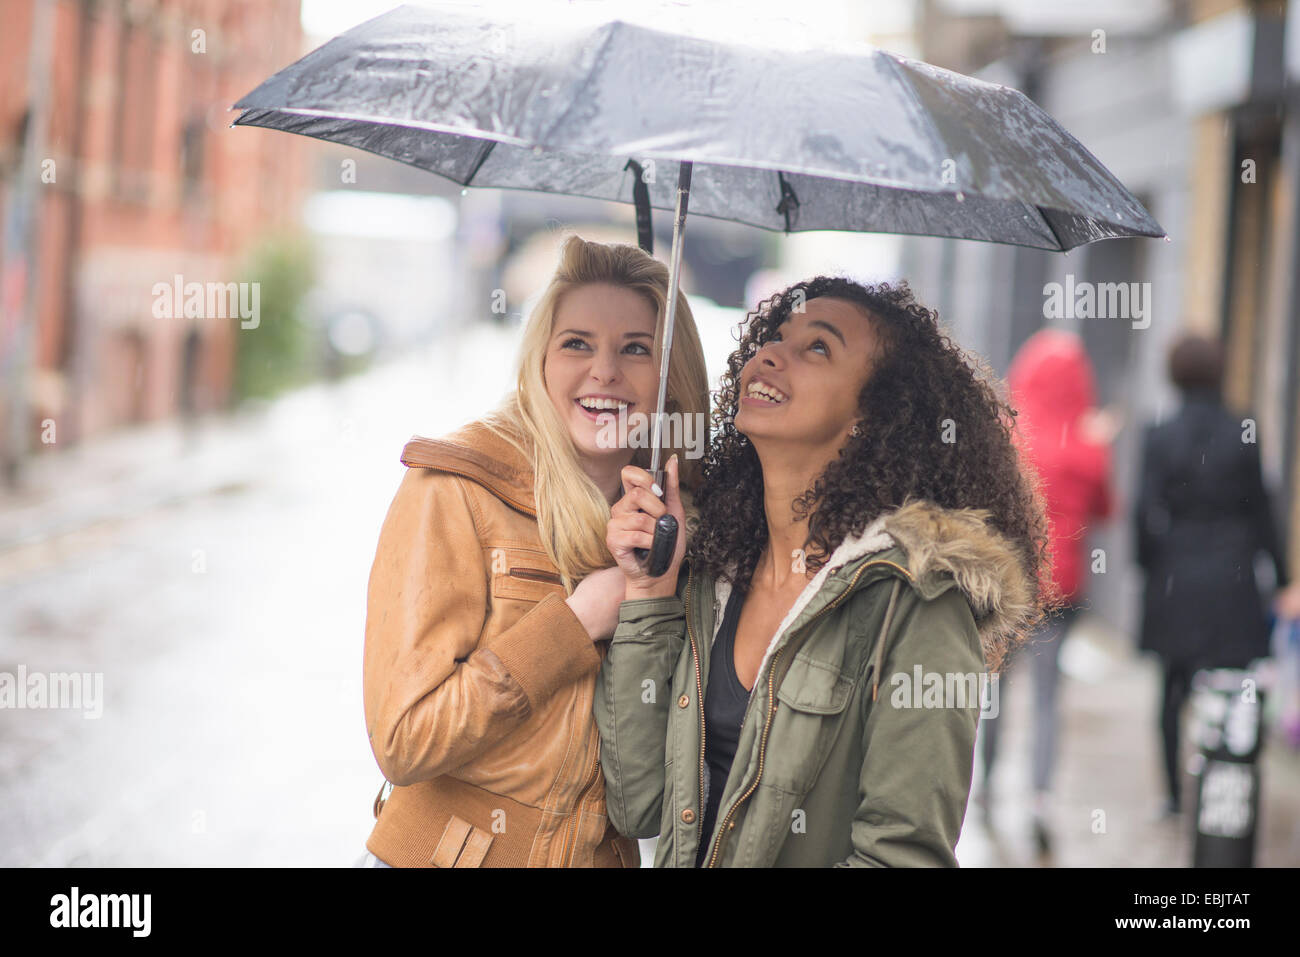 Young women sheltering under umbrella - Stock Image